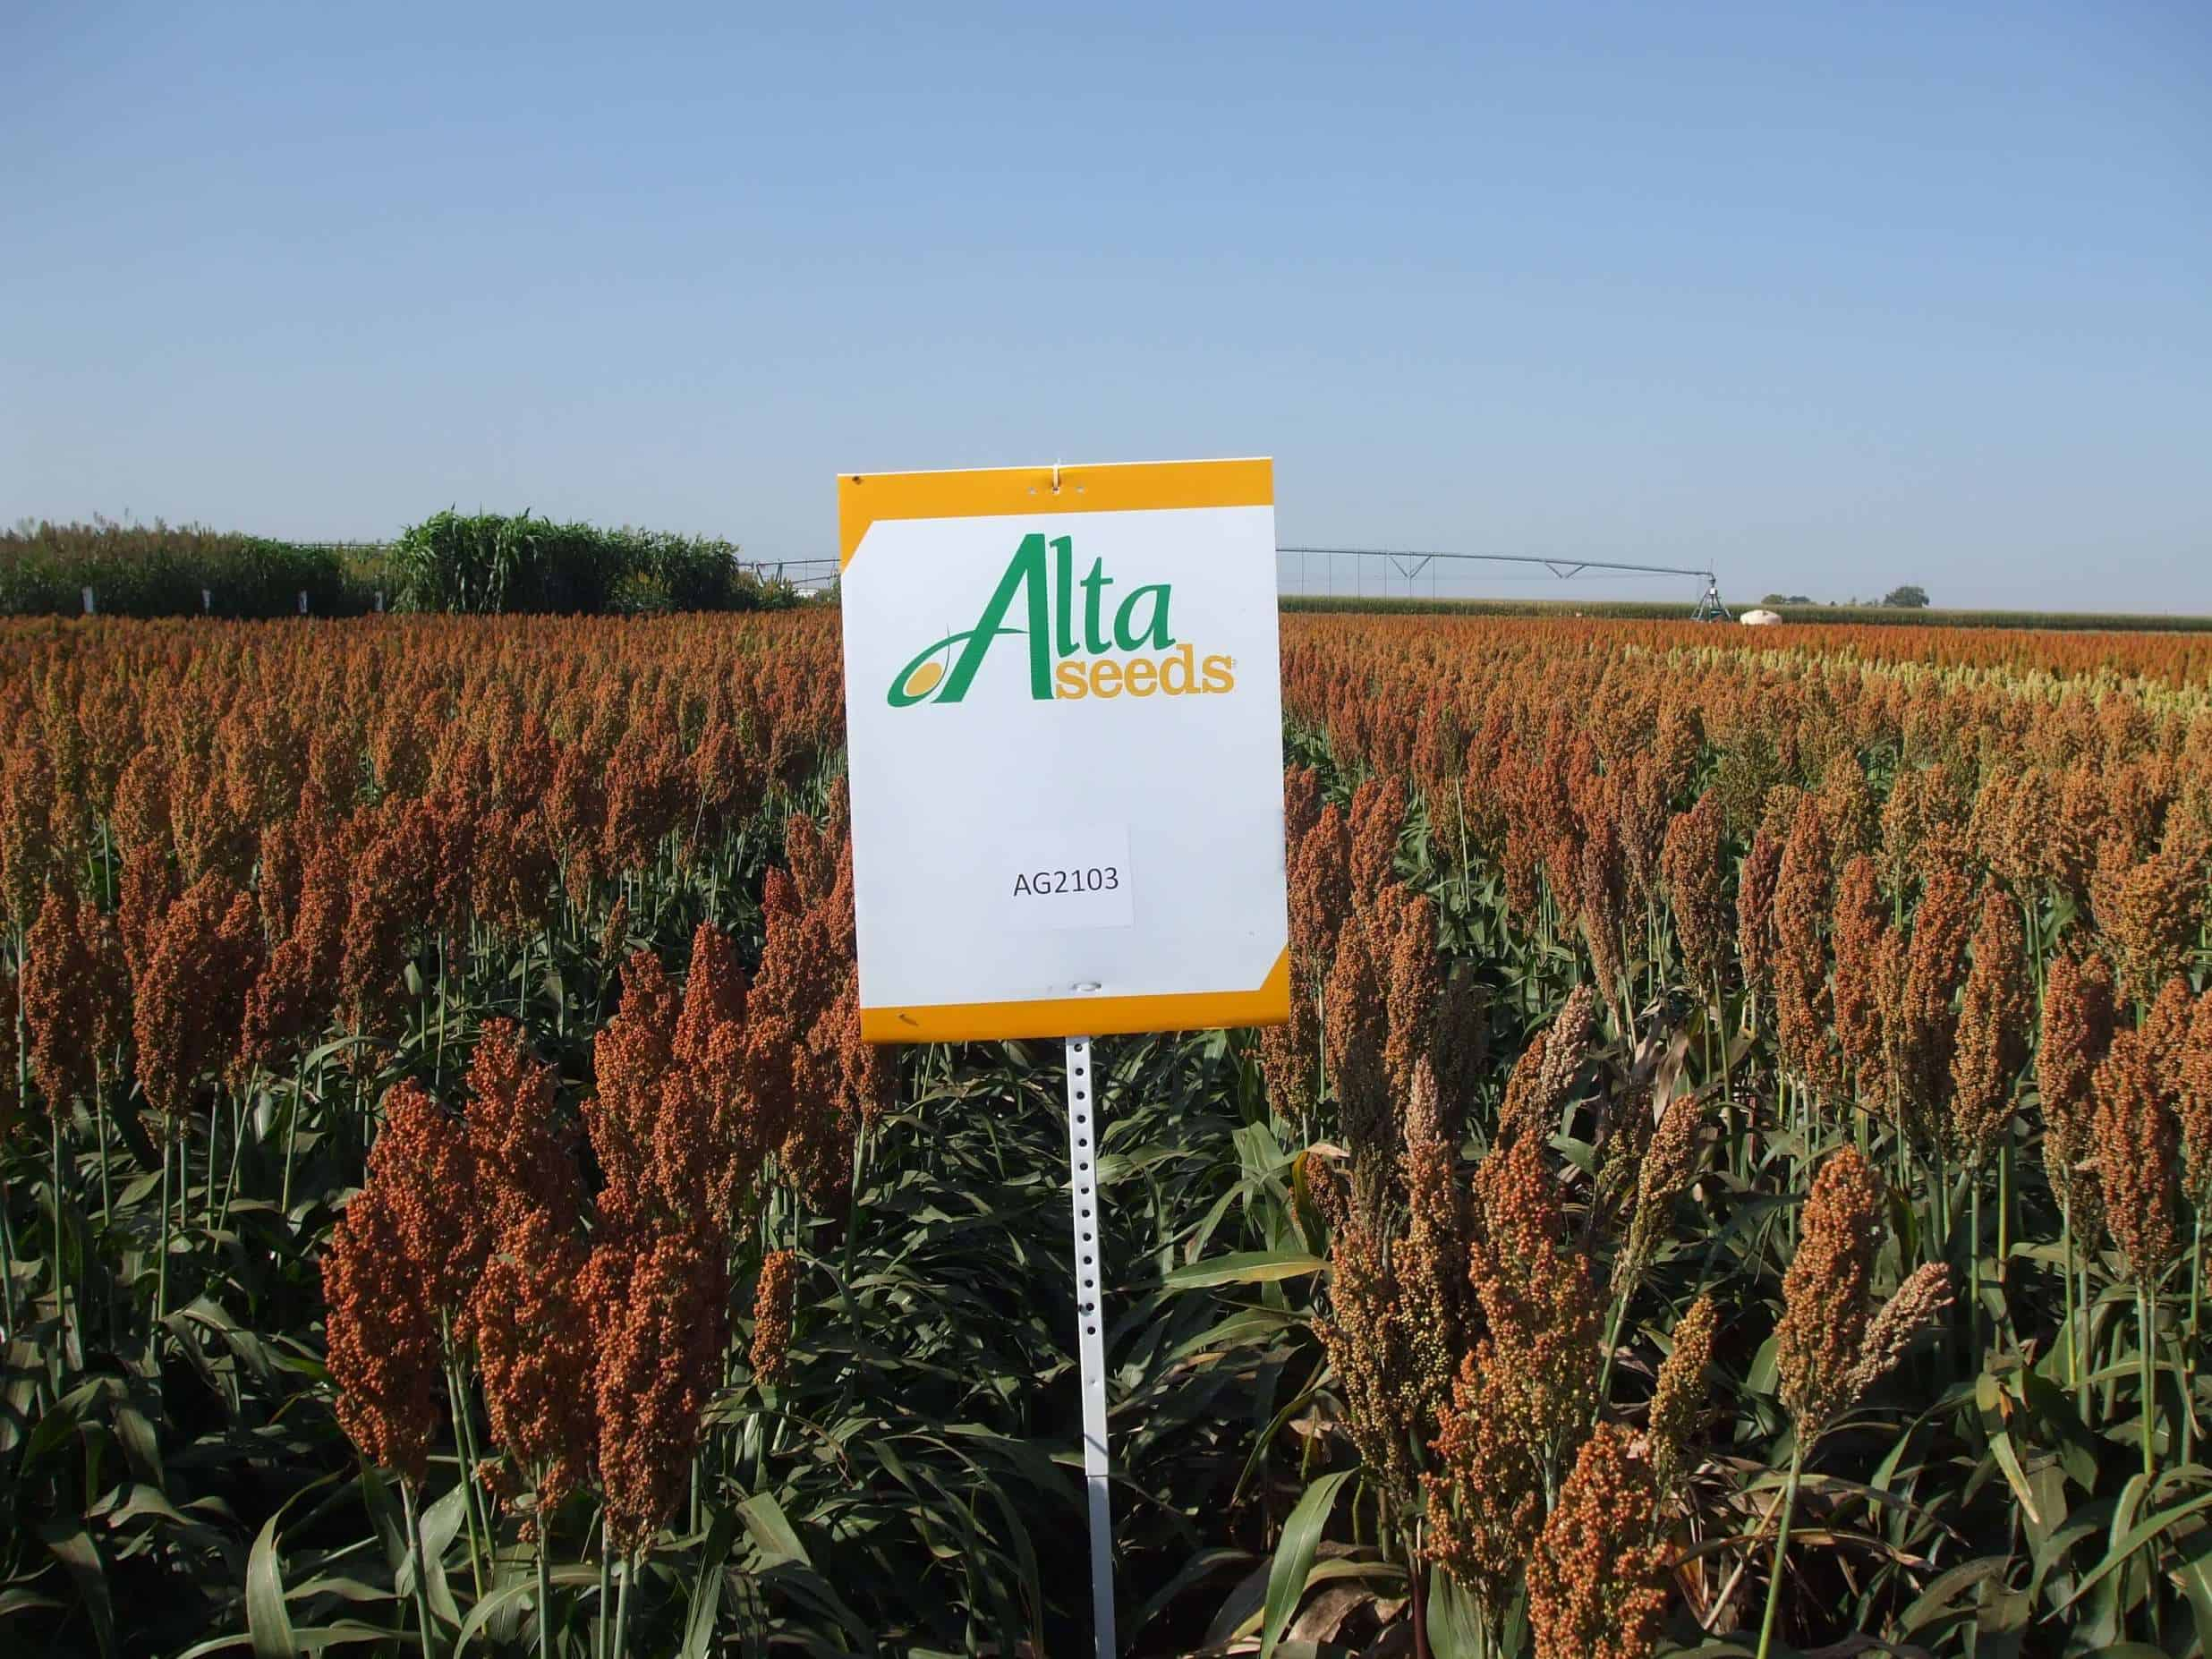 Sign next to crops